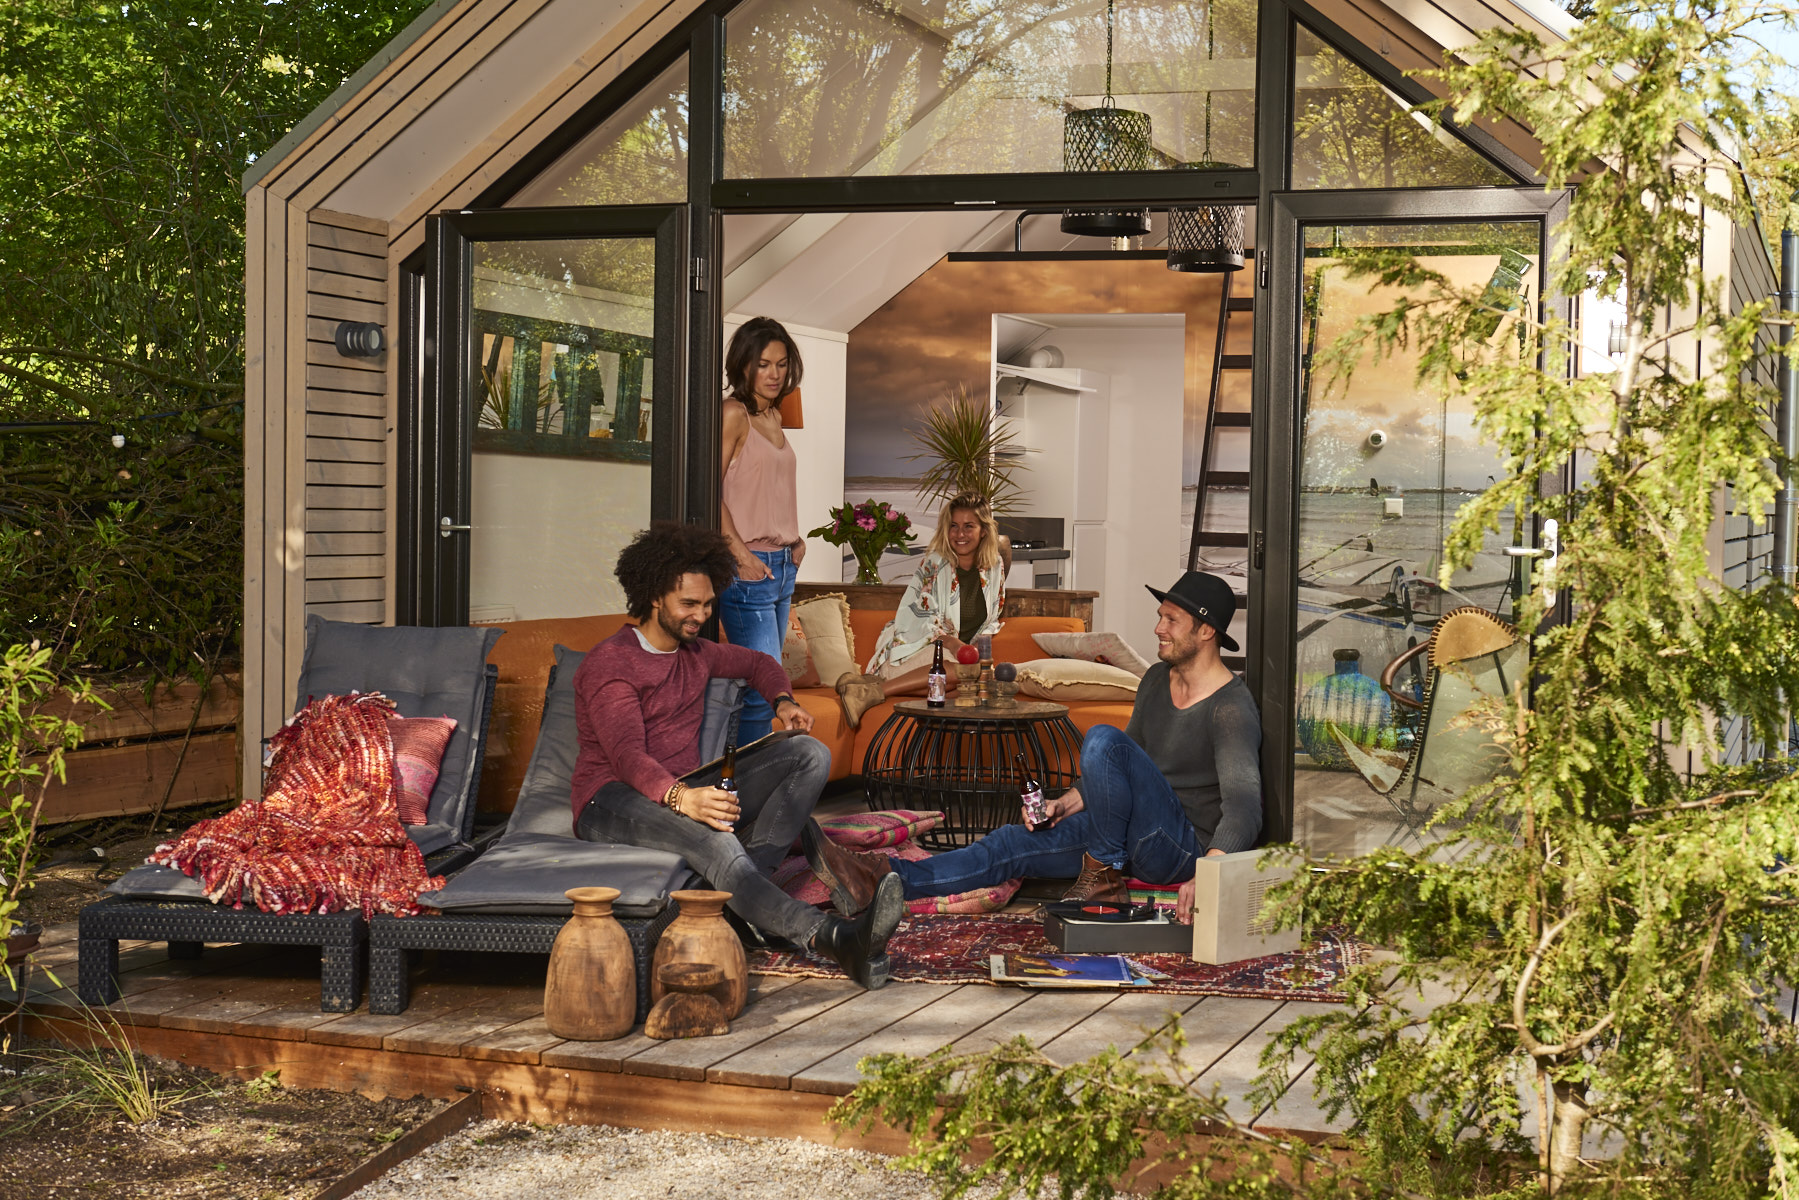 Nieuwe glamping trend gespot tiny house glampings for Tiny house movement nederland